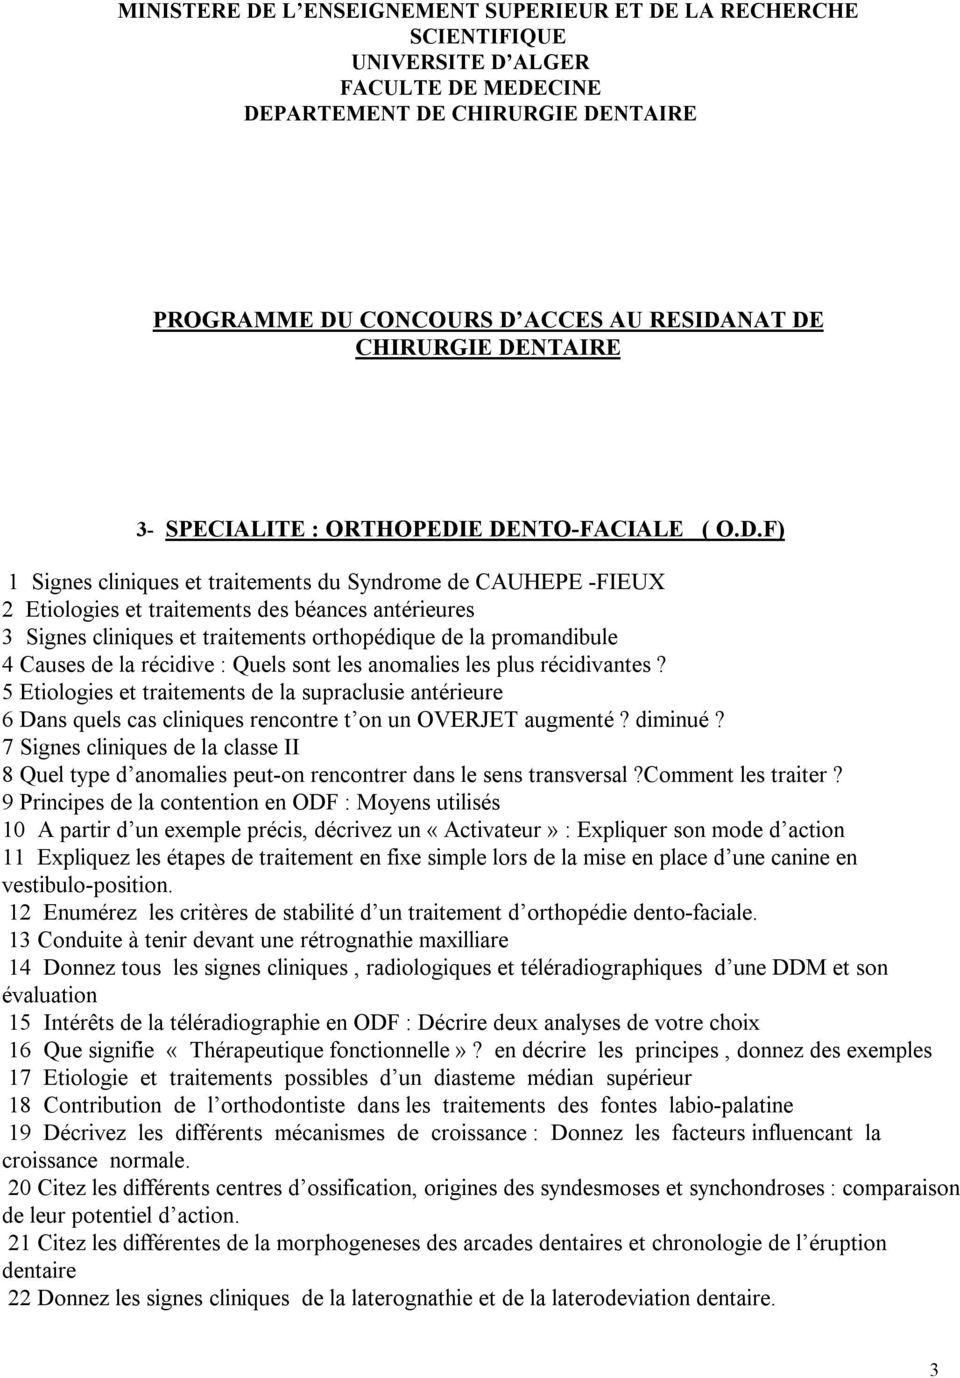 LA RECHERCHE SCIENTIFIQUE UNIVERSITE D